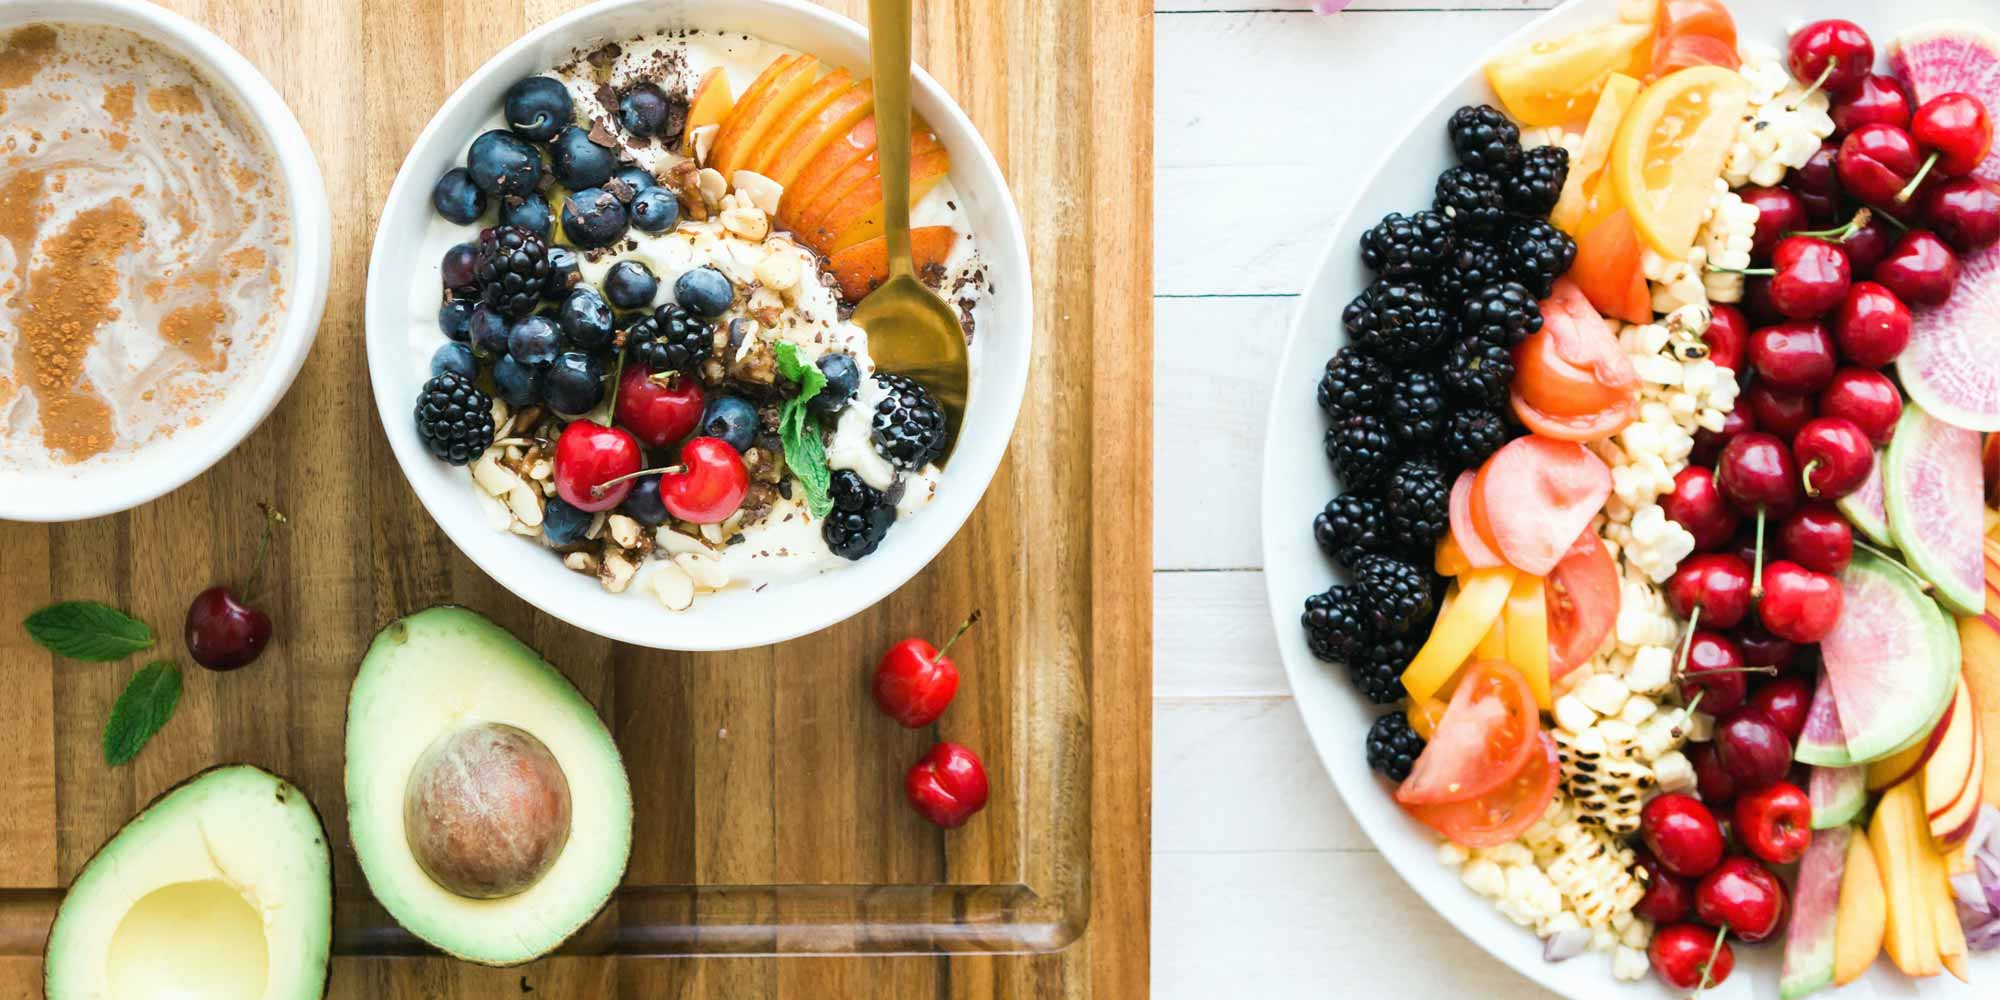 , SUPERFOOD: WHAT IT IS EXACTLY AND WHAT IS THE TRUTH